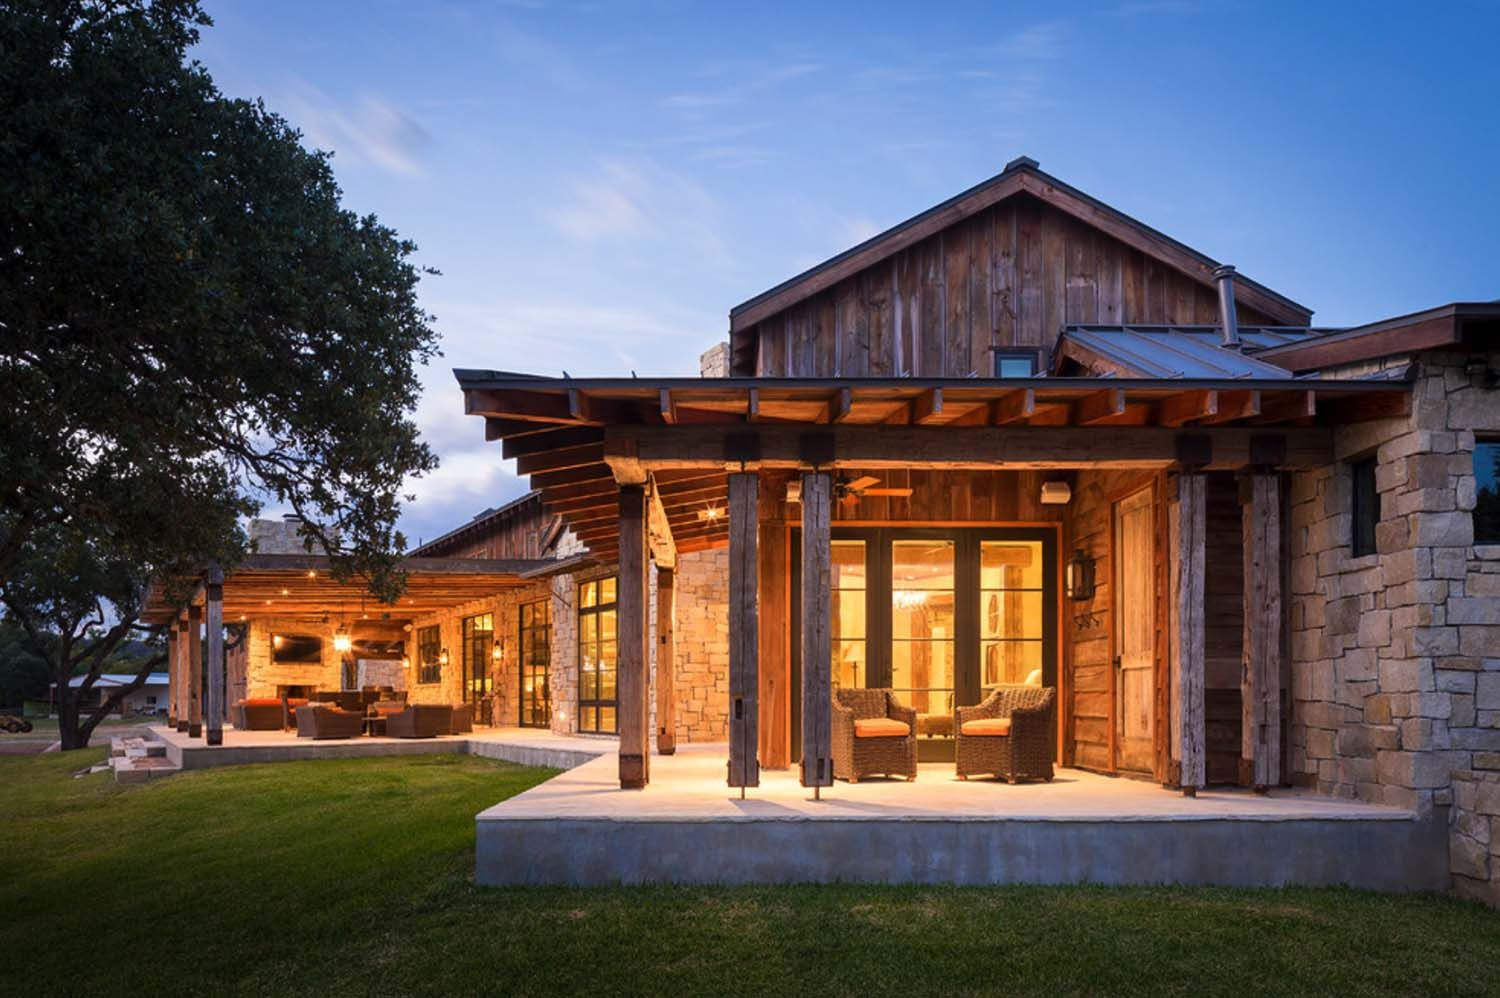 Modern rustic barn style retreat in texas hill country texas hill country ranch and texas Rustic home architecture